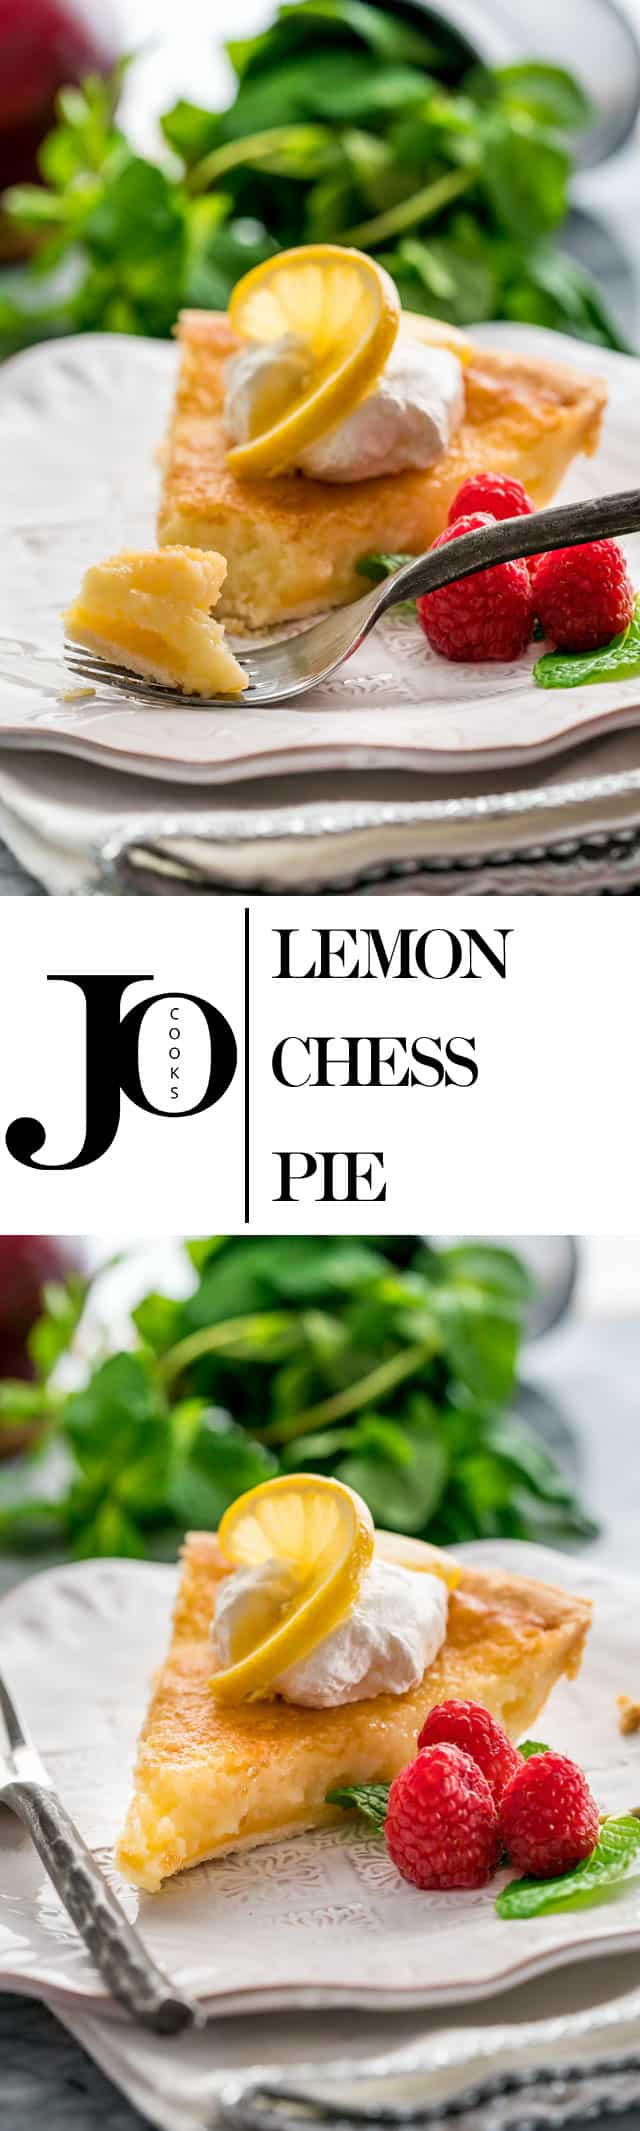 This Lemon Chess Pie is really easy to make and quick to put together. All the lemons simply make this pie divine, with its flaky crust and its incredible lemon curd like filling. www.jocooks.com #lemonpie